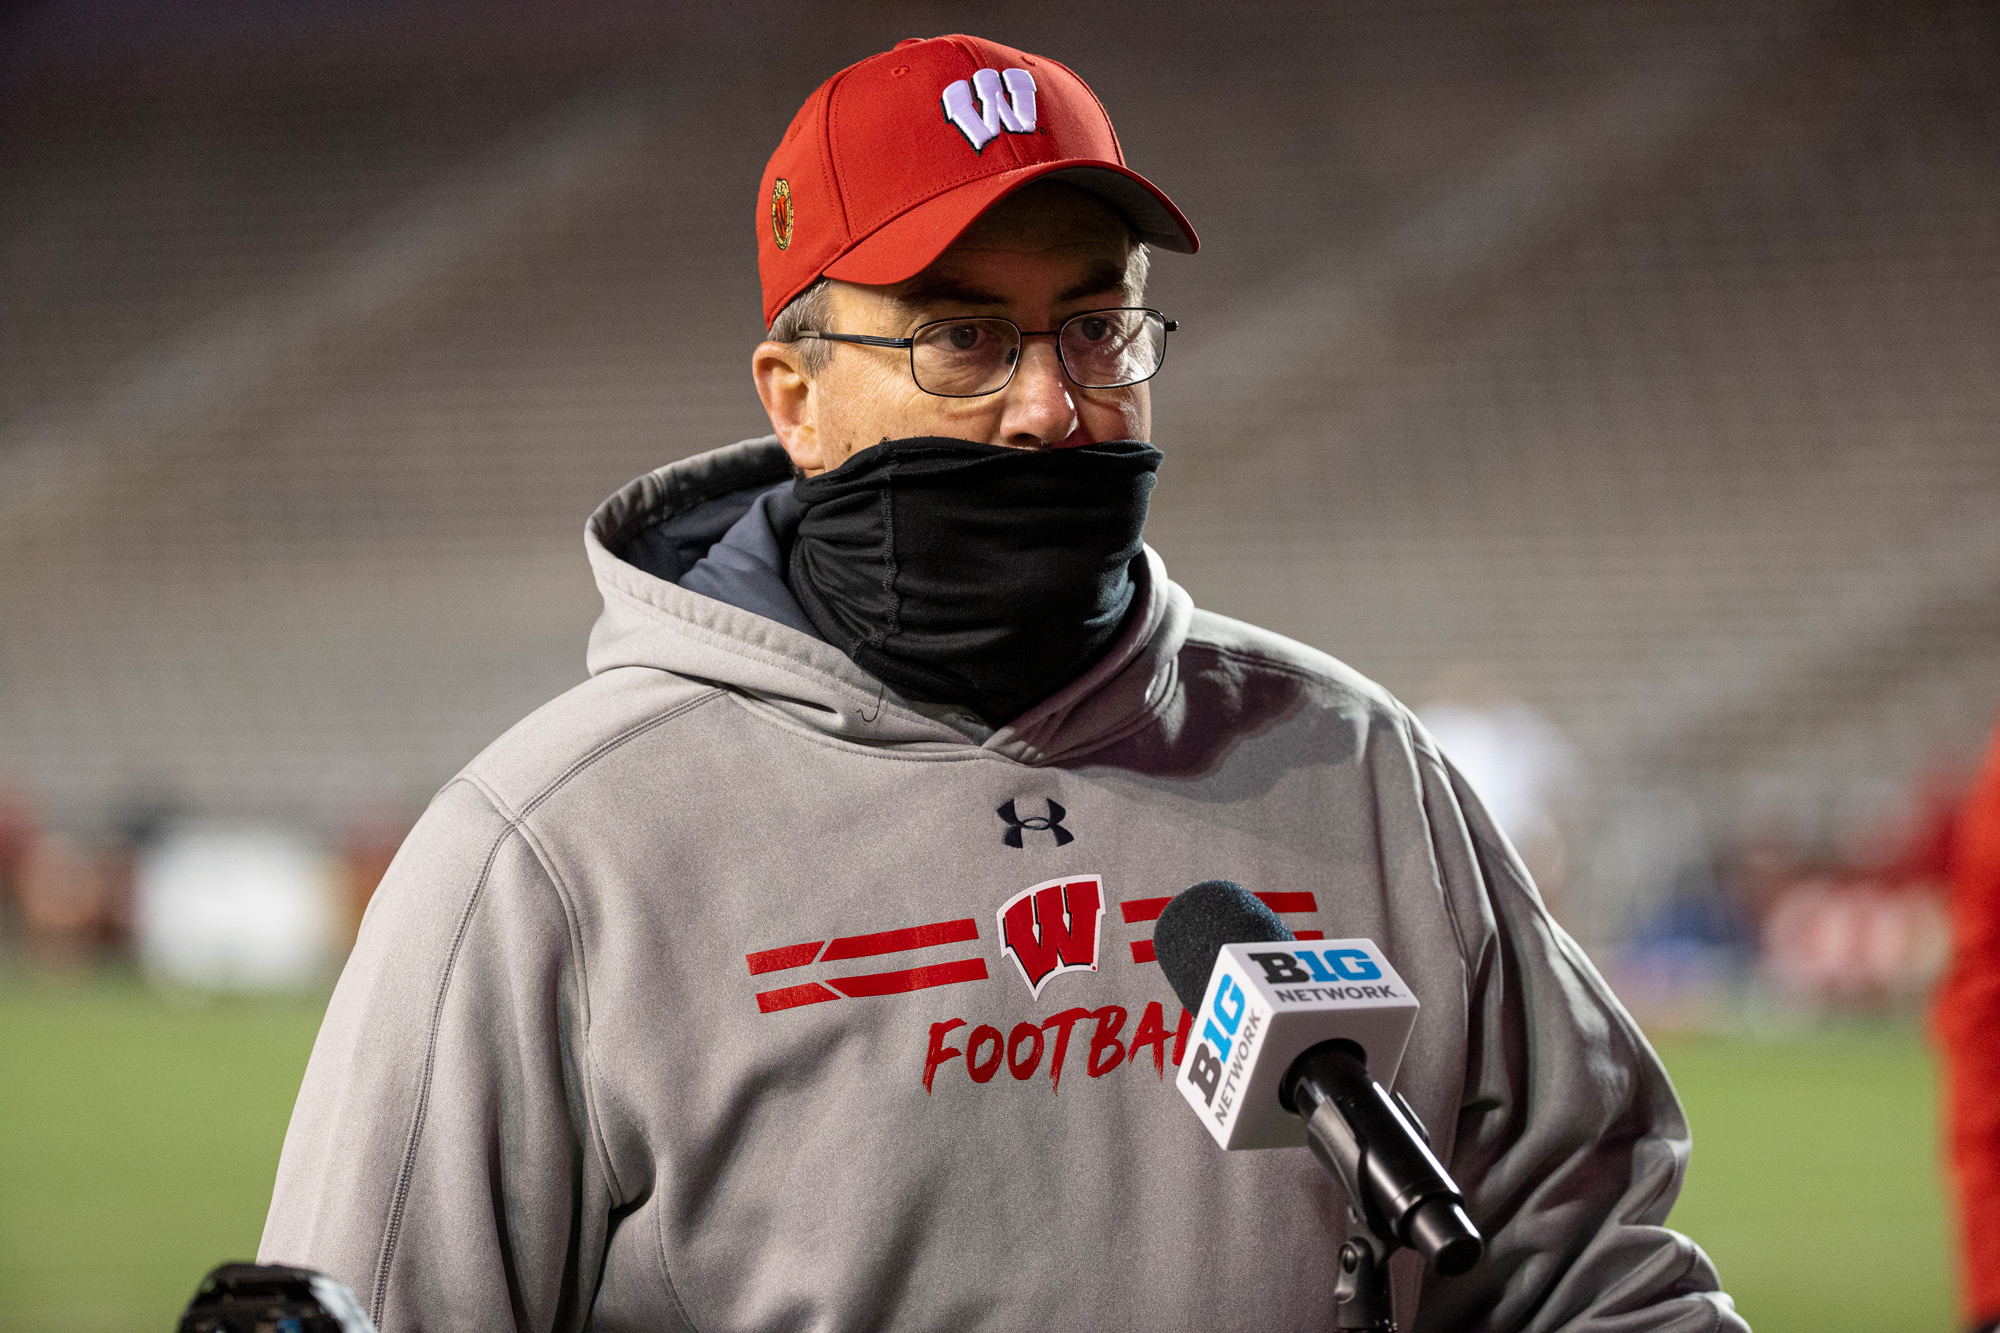 Wisconsin Badgers Head Coach Paul Chryst does a post-game interview after an NCAA college football game against the Illinois Fighting Illini on October 23 in Madison, Wisconsin.